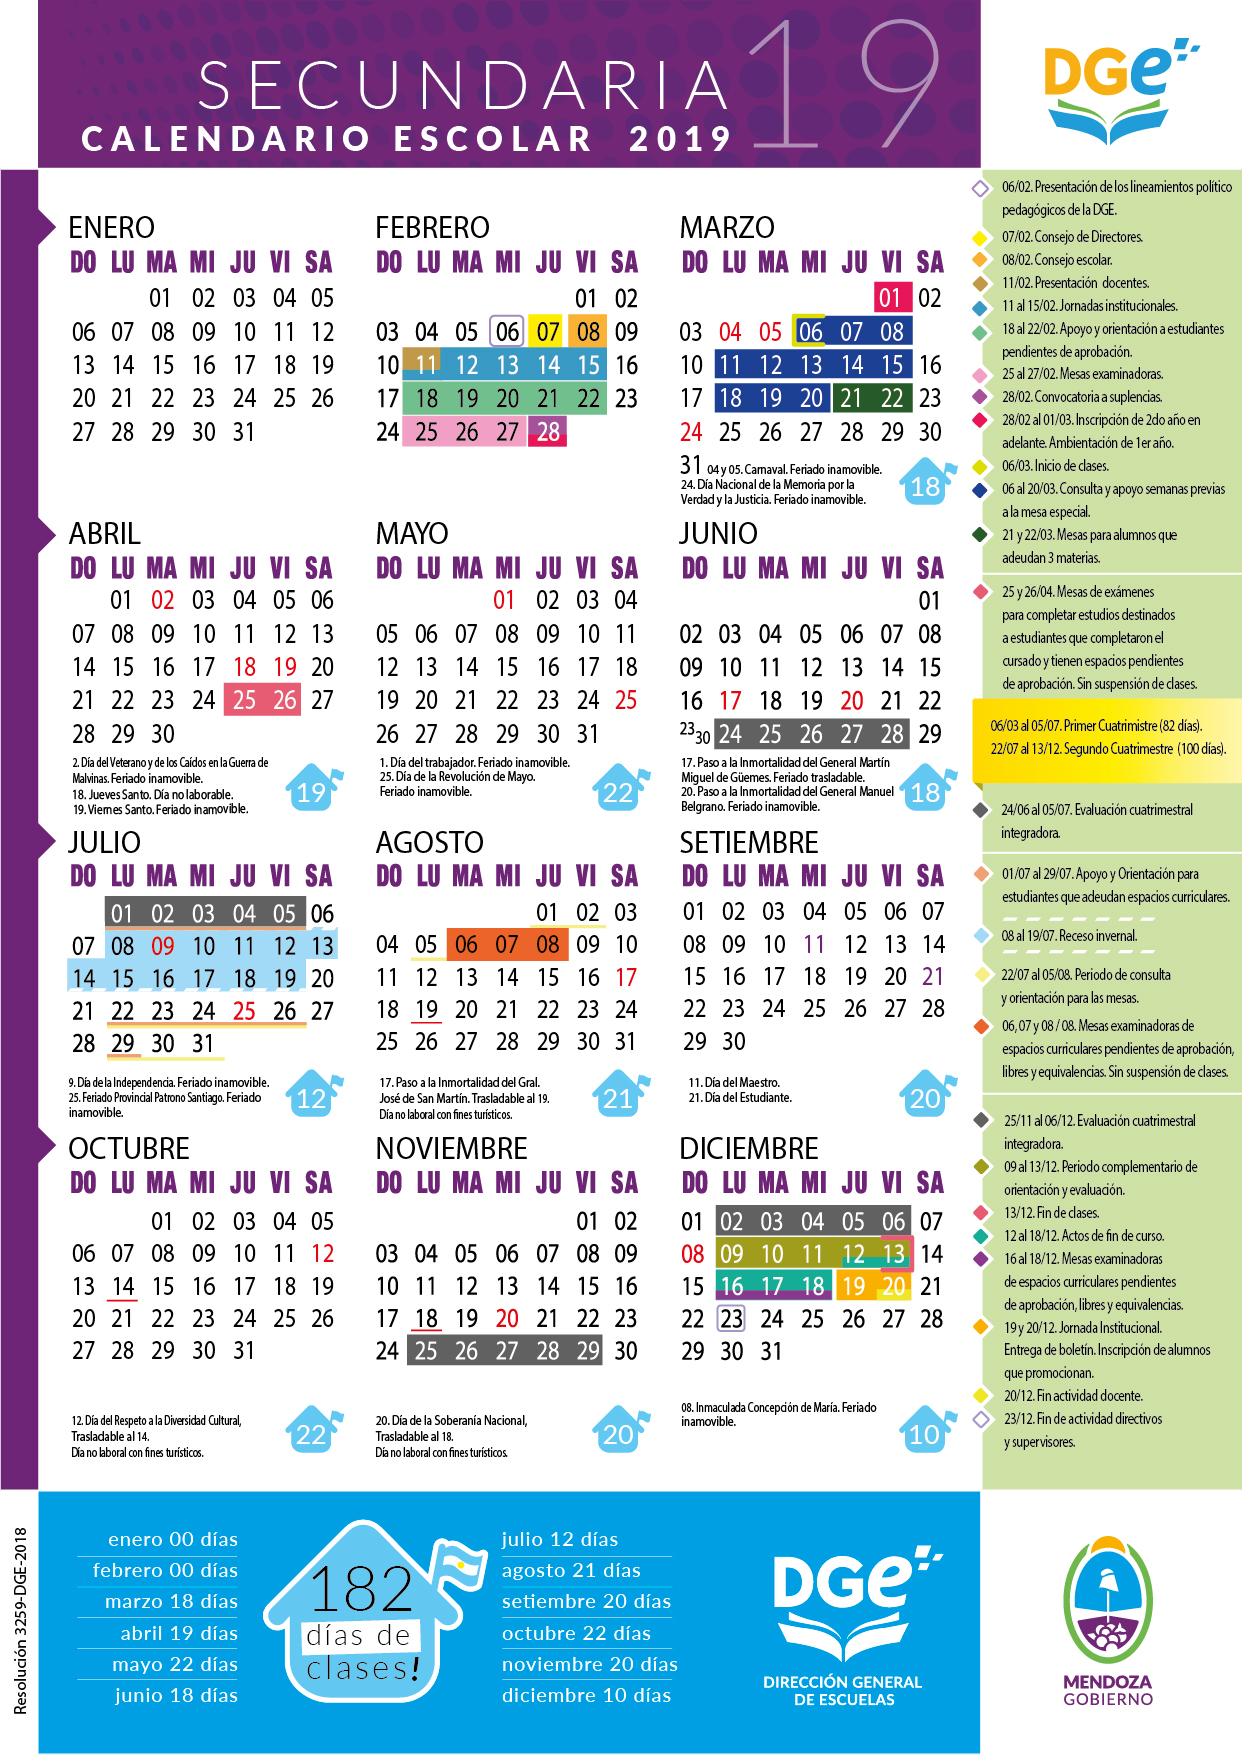 CALENDARIO_ESCOLAR_2019_SECUNDARIA